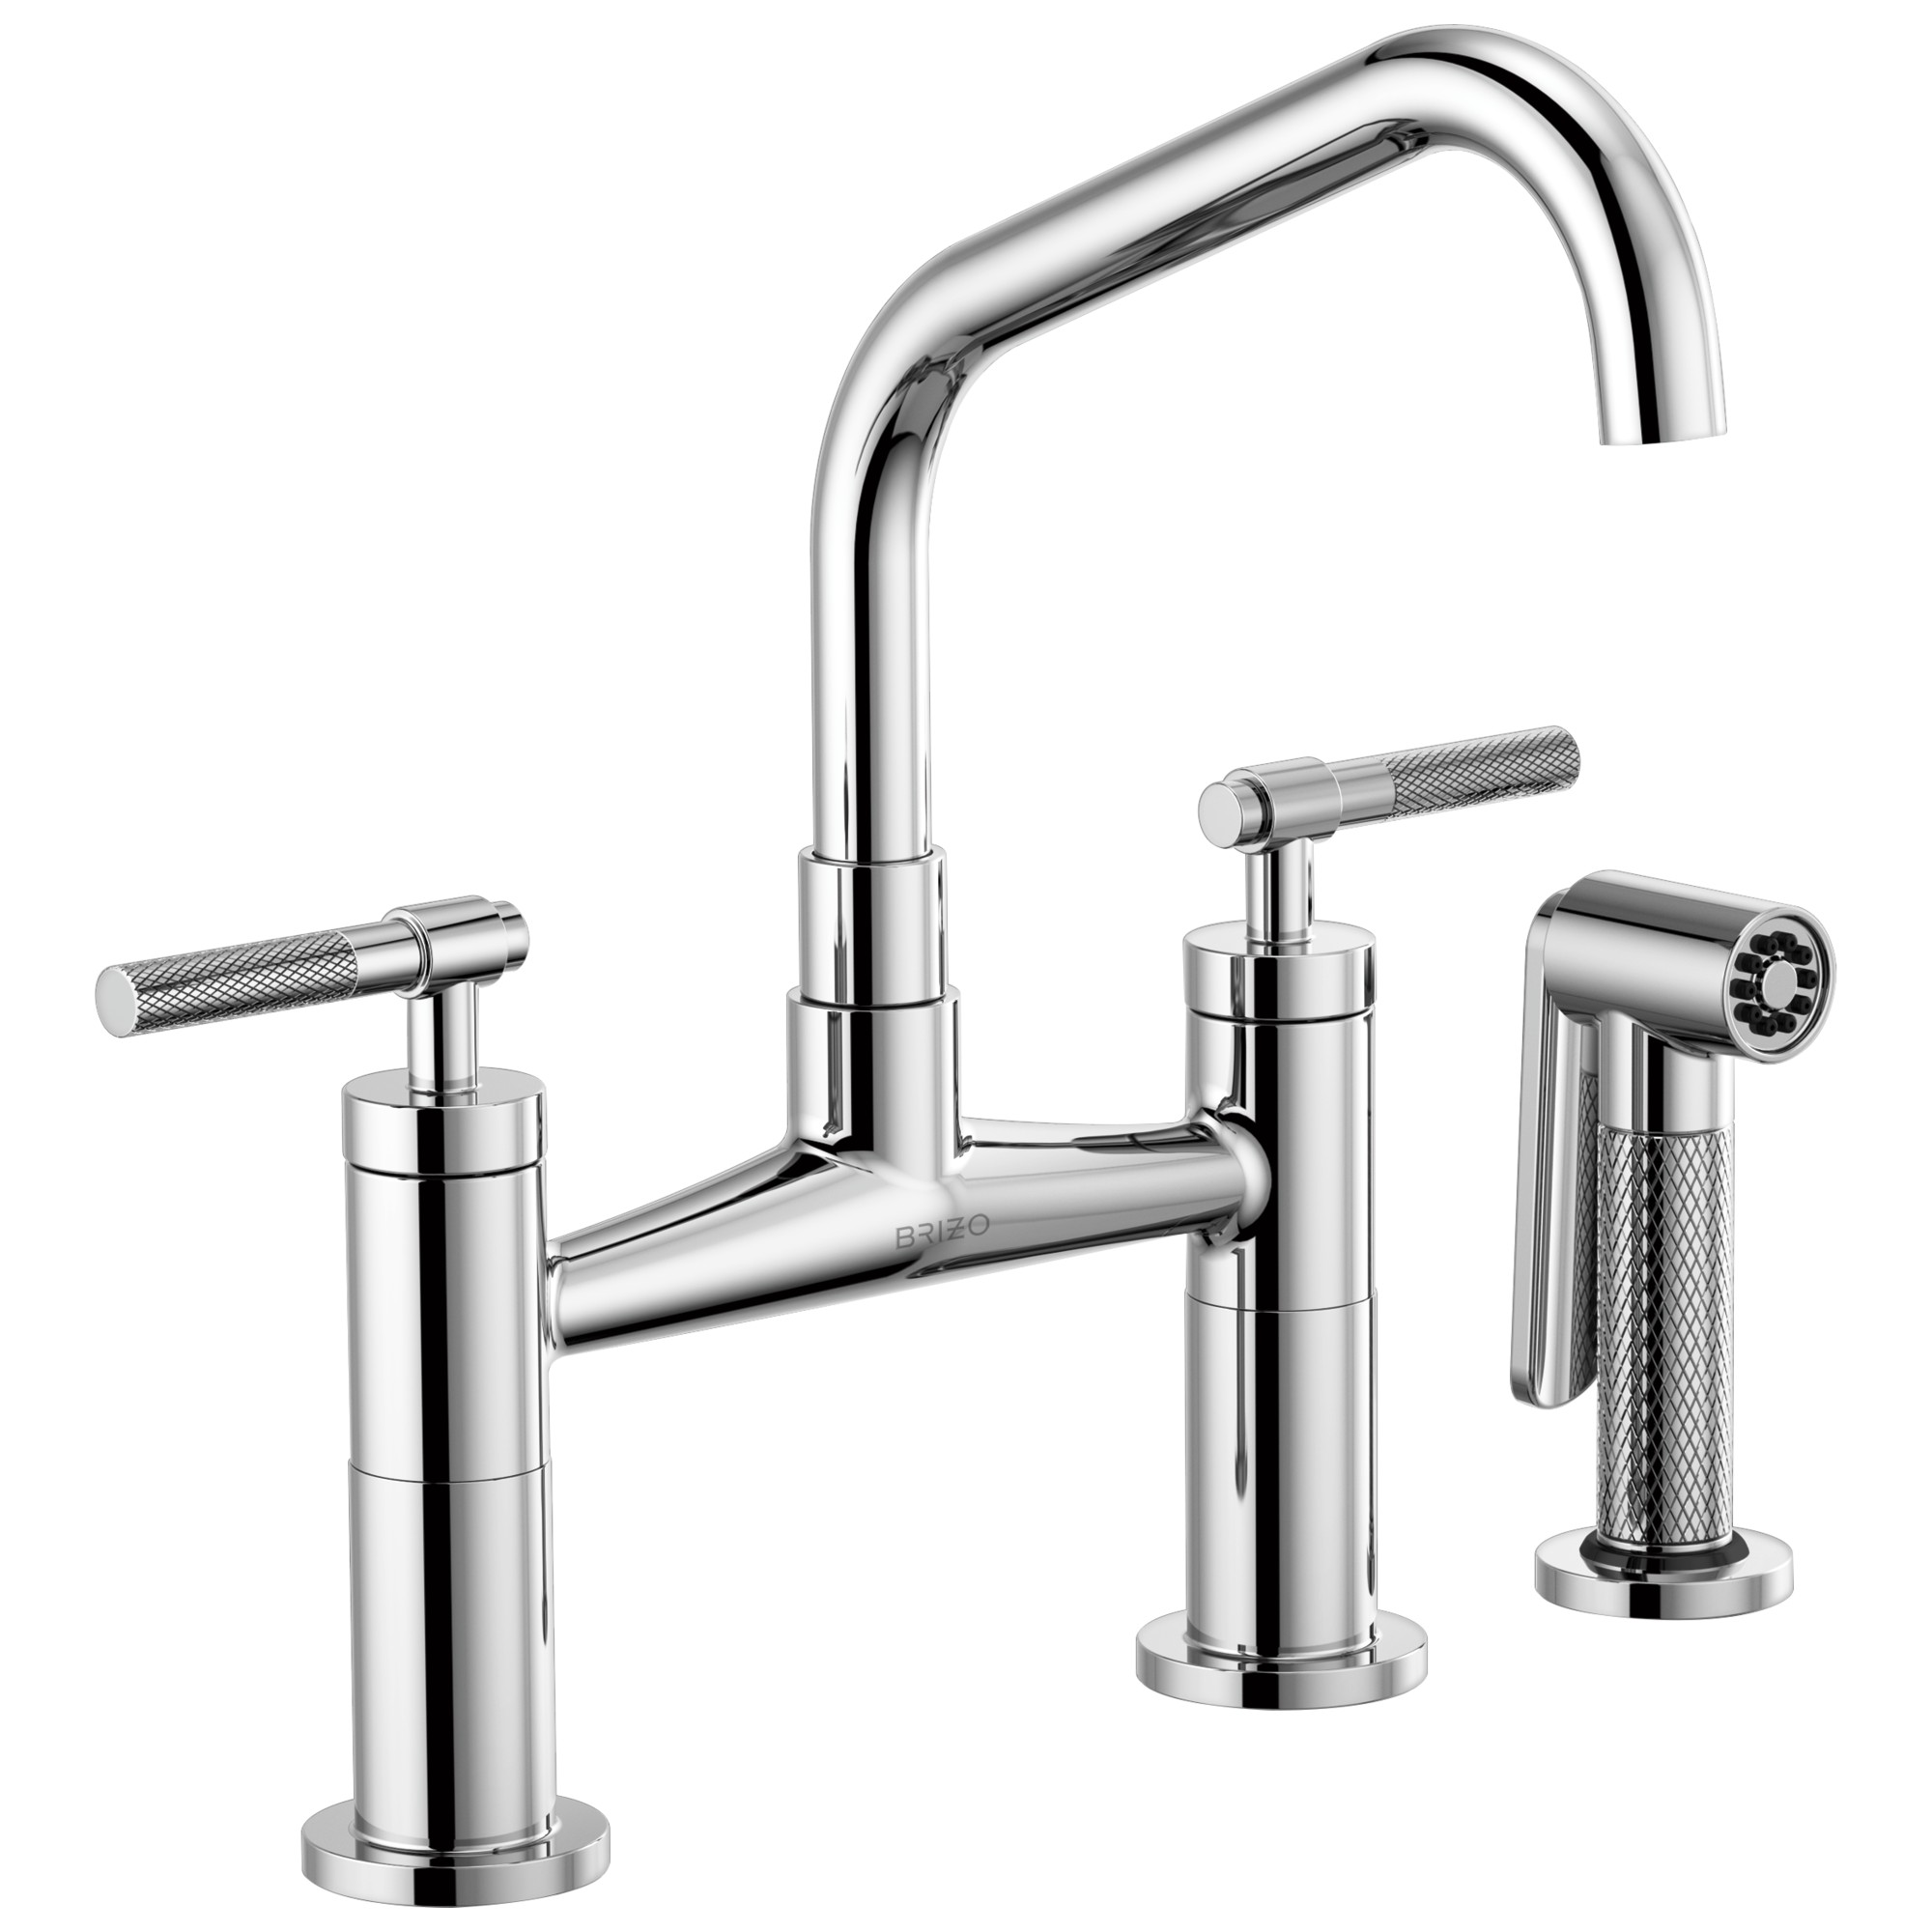 Brizo 62563LF-PC Litze Bridge Faucet with Angled Spout and Knurled Handle - Chrome